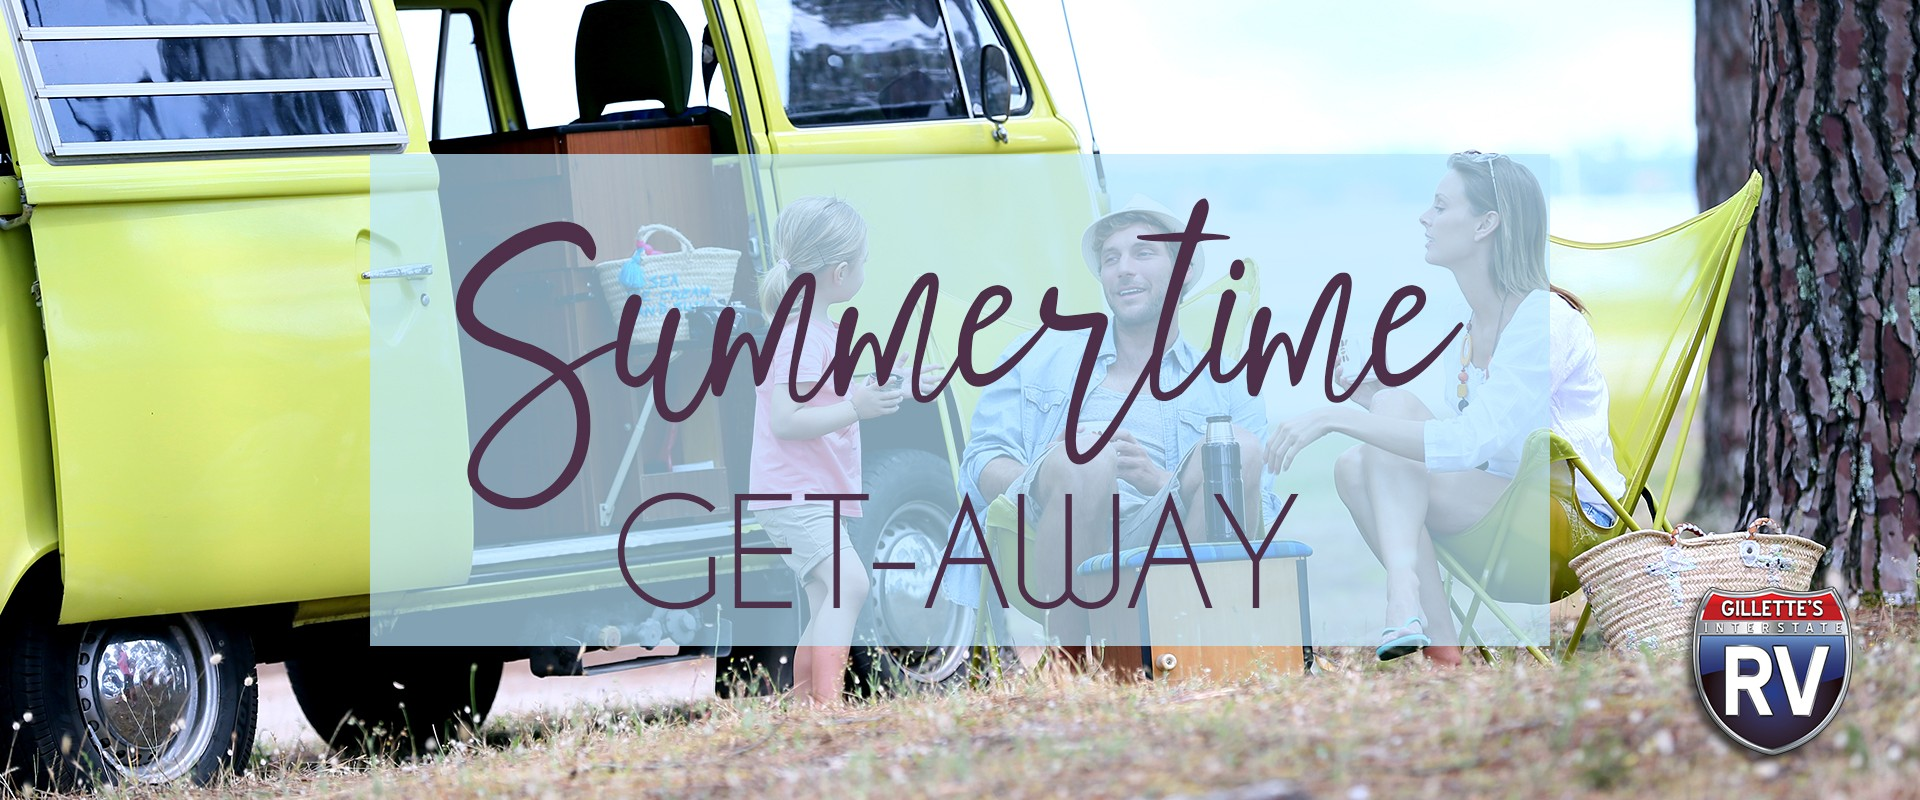 RVs perfect for summertime